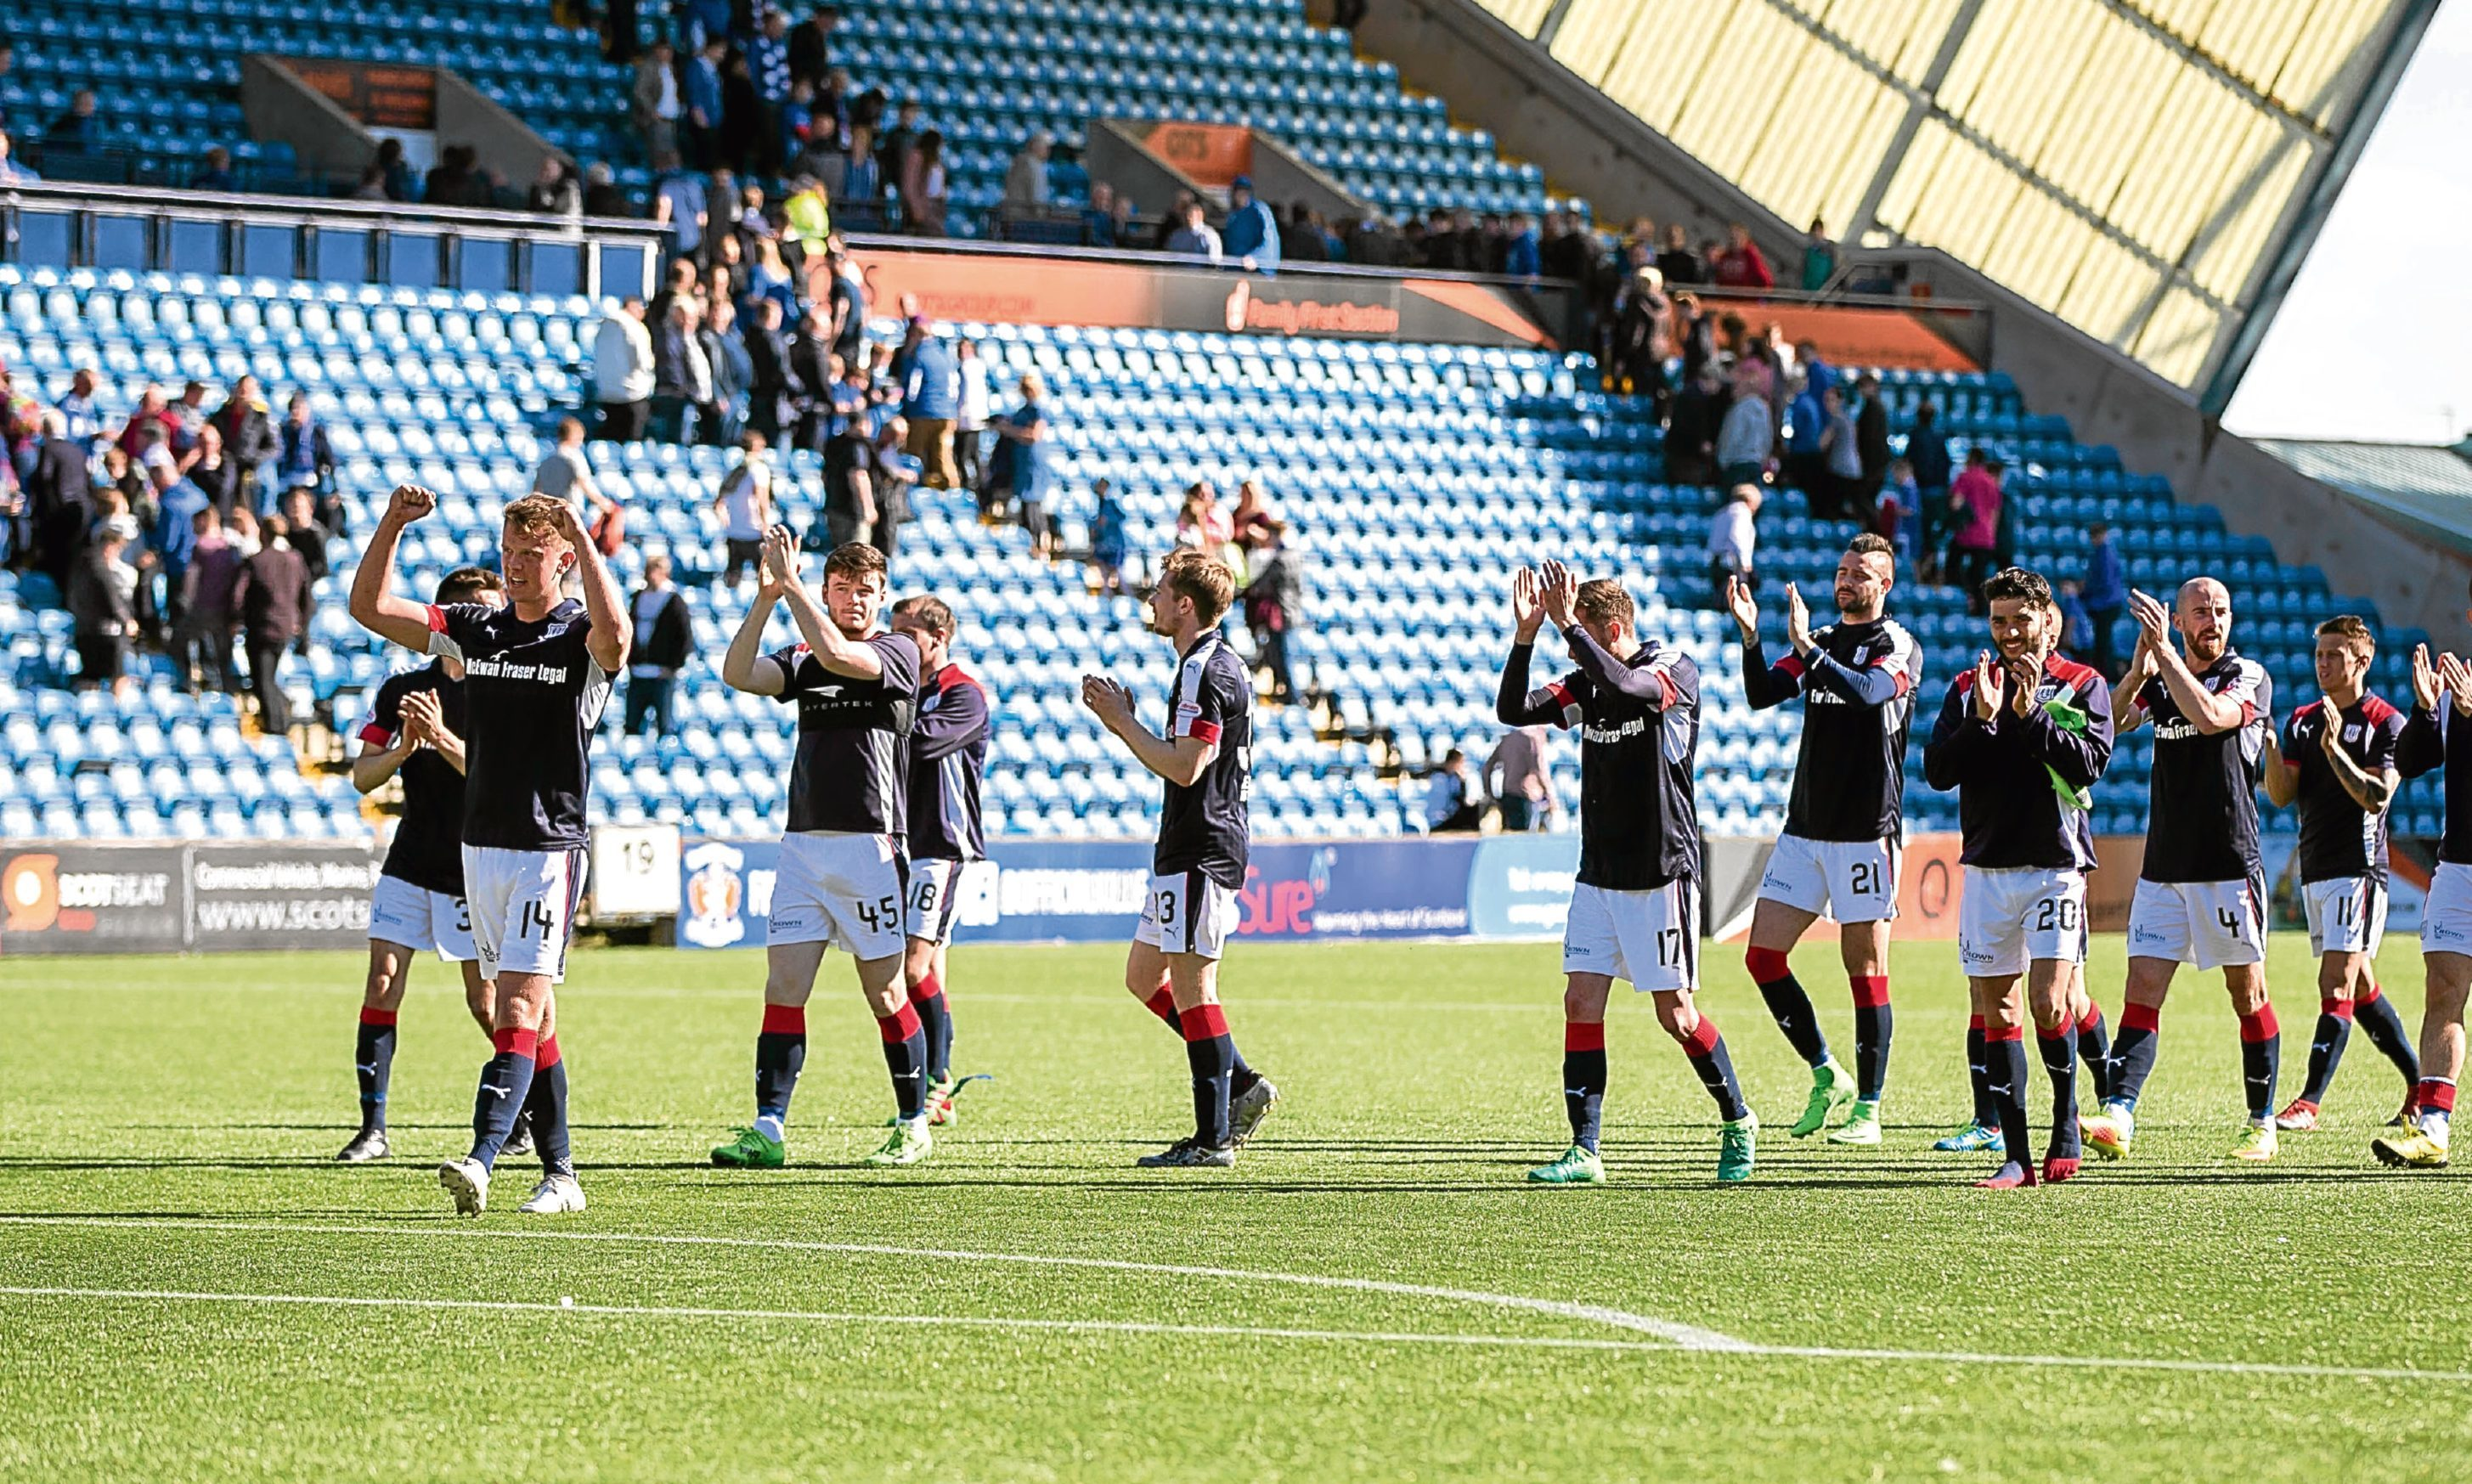 Dundee players applaud the visiting support after the 1-0 win at Kilmarnock on Saturday